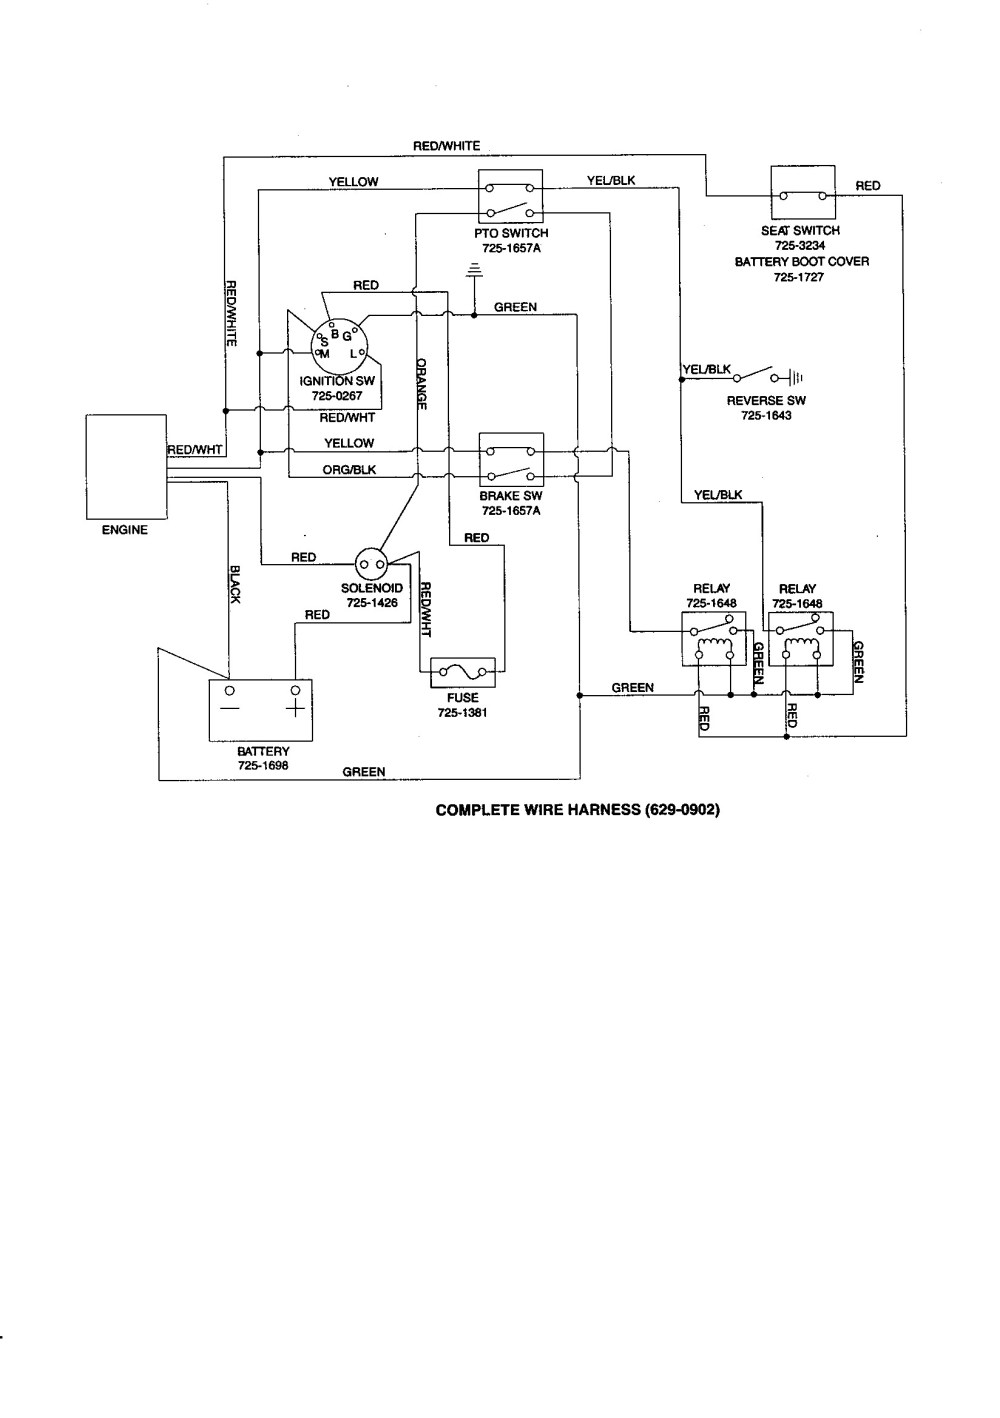 medium resolution of wiring diagram for craftsman 917 276922 riding lawn mower wiring wiring diagram for craftsman 917 276922 riding lawn mower